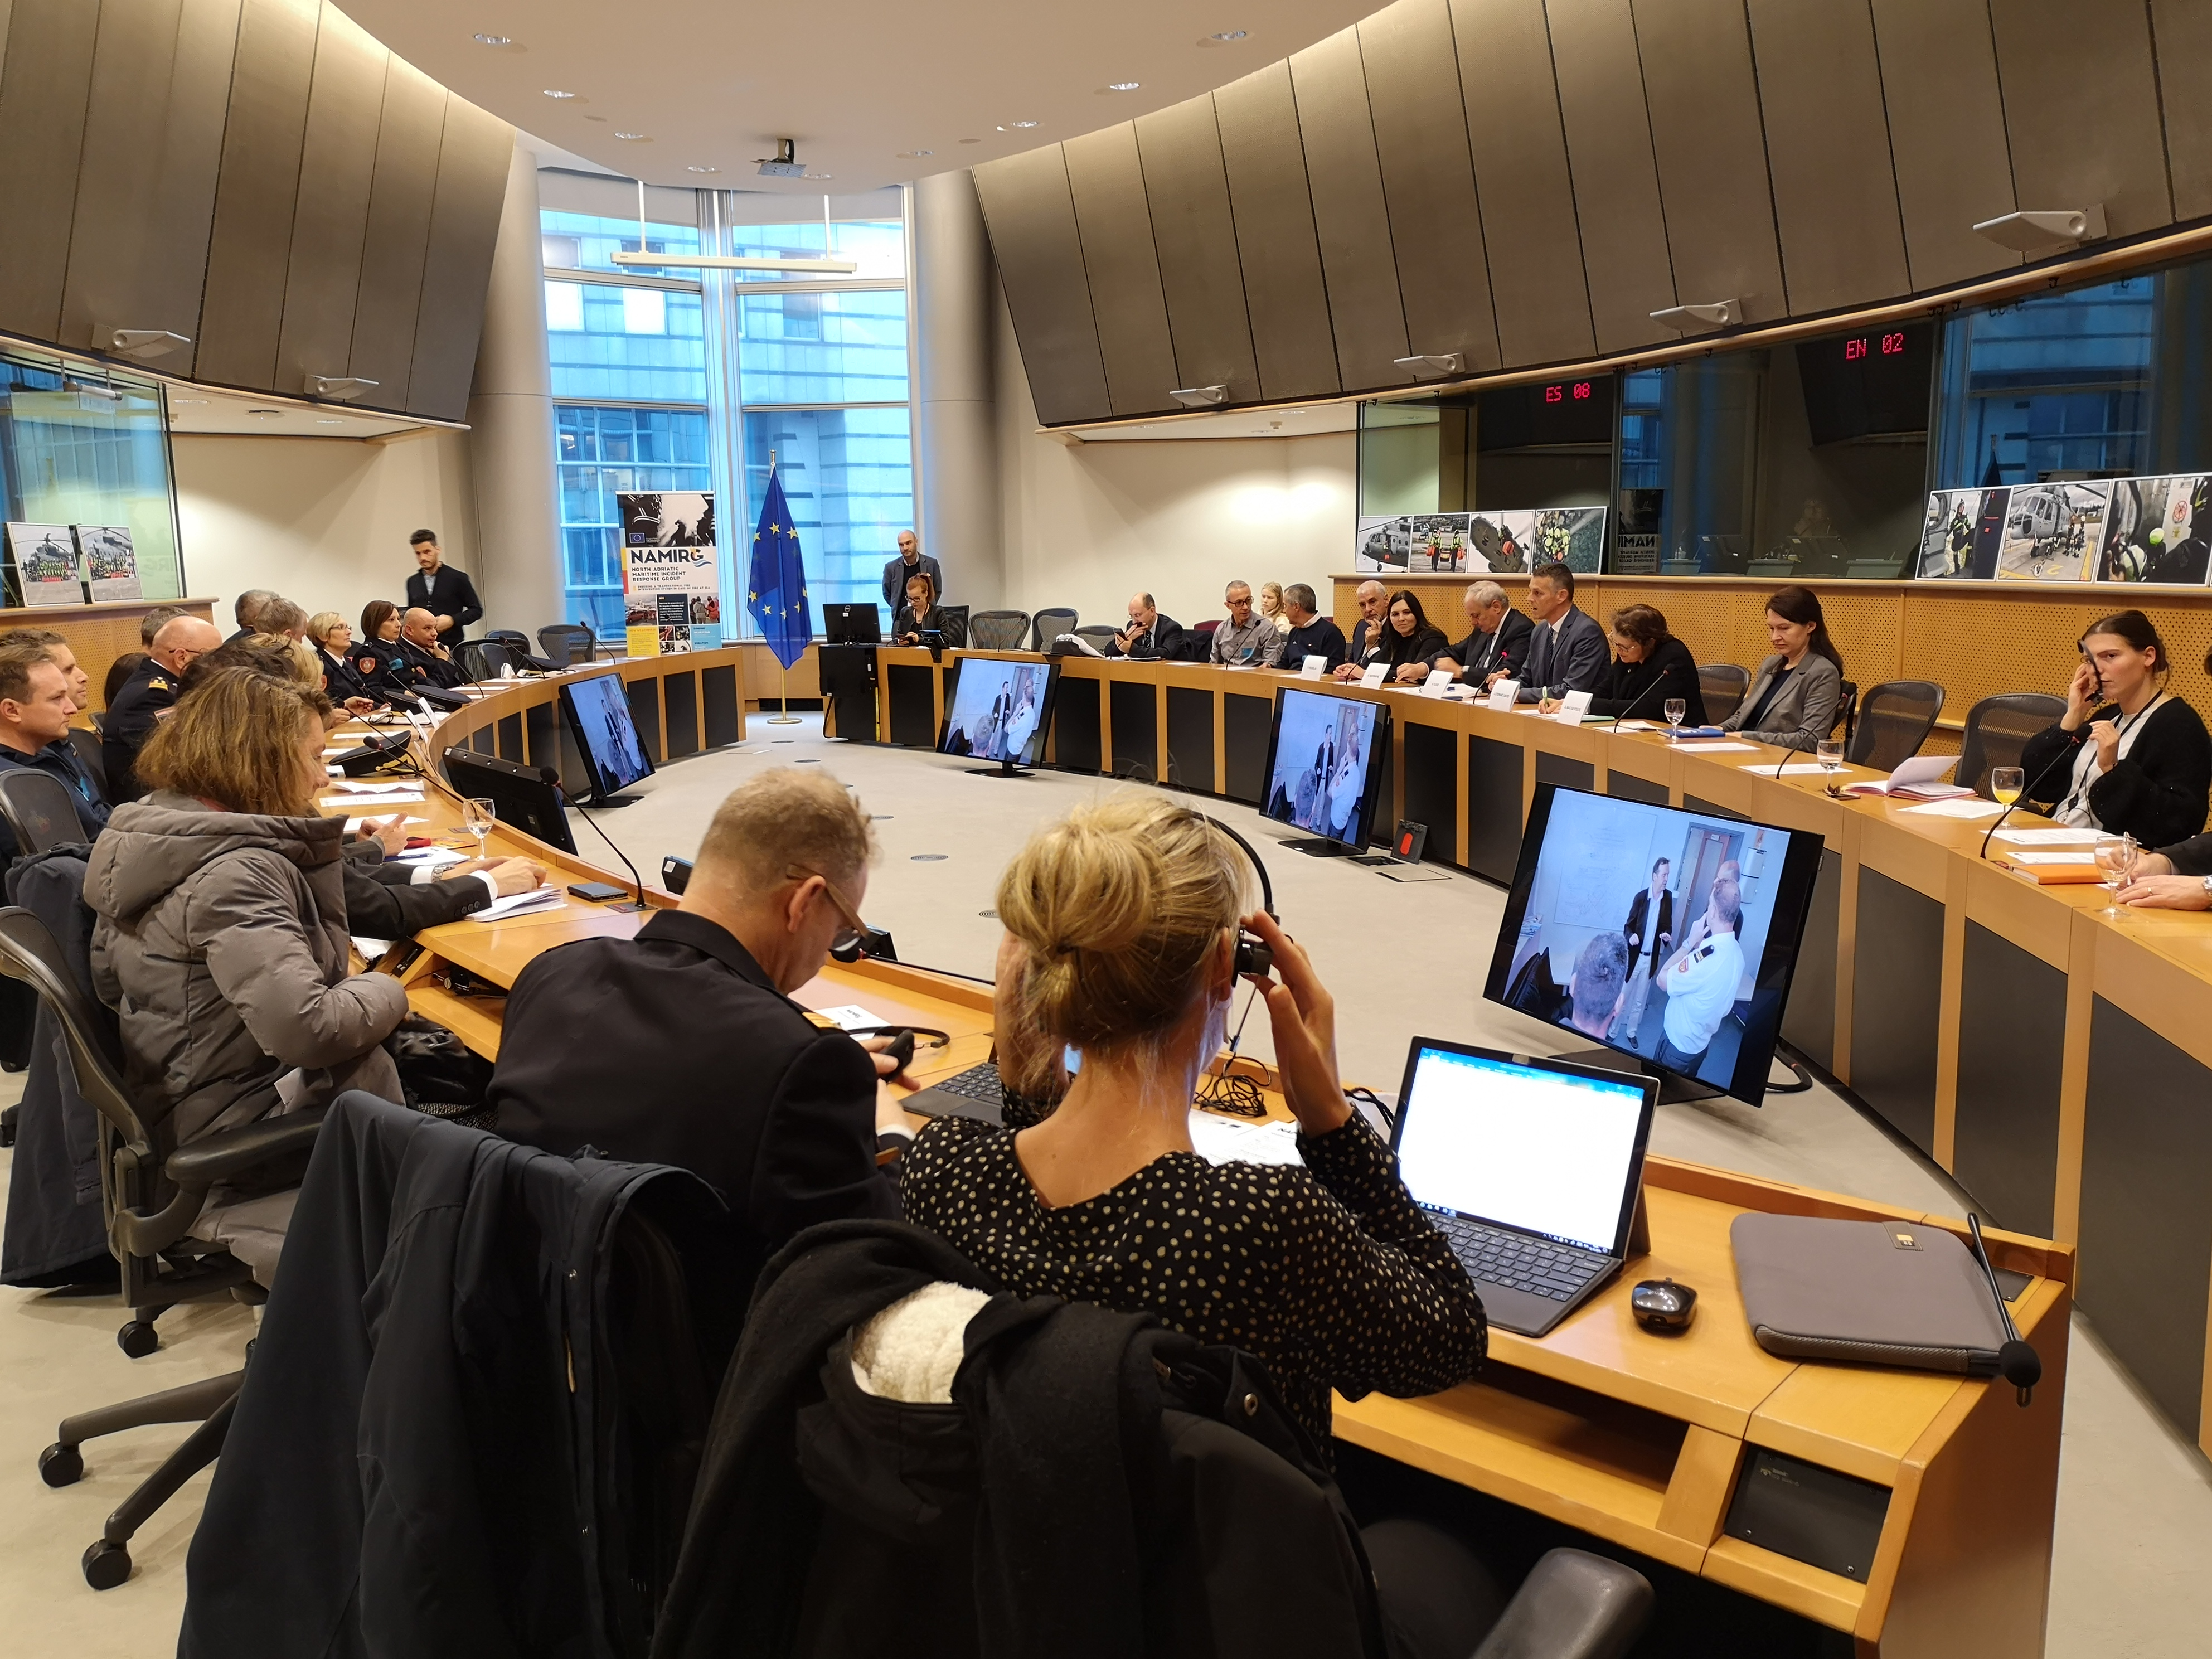 Image - Promotion of NAMIRG at the European Parliament